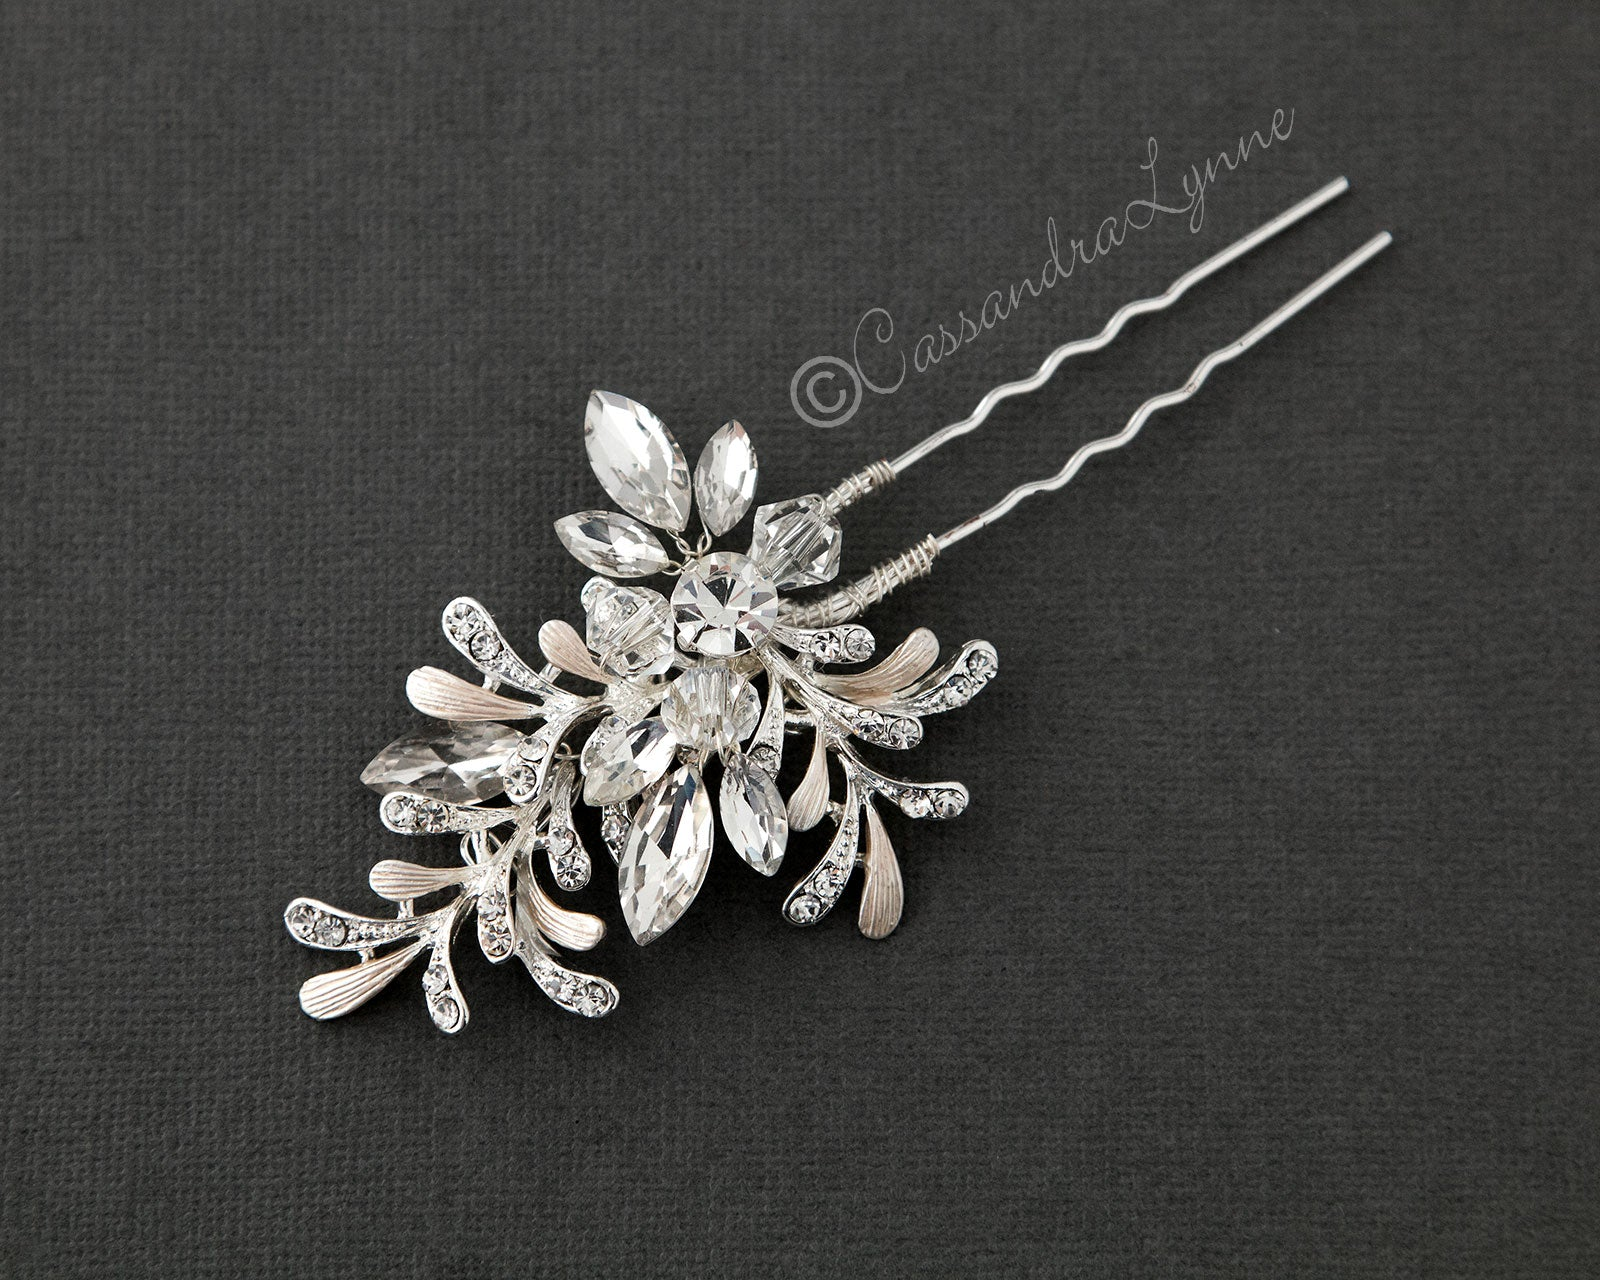 Bridal Hair Pin of Crystal and Rhinestone